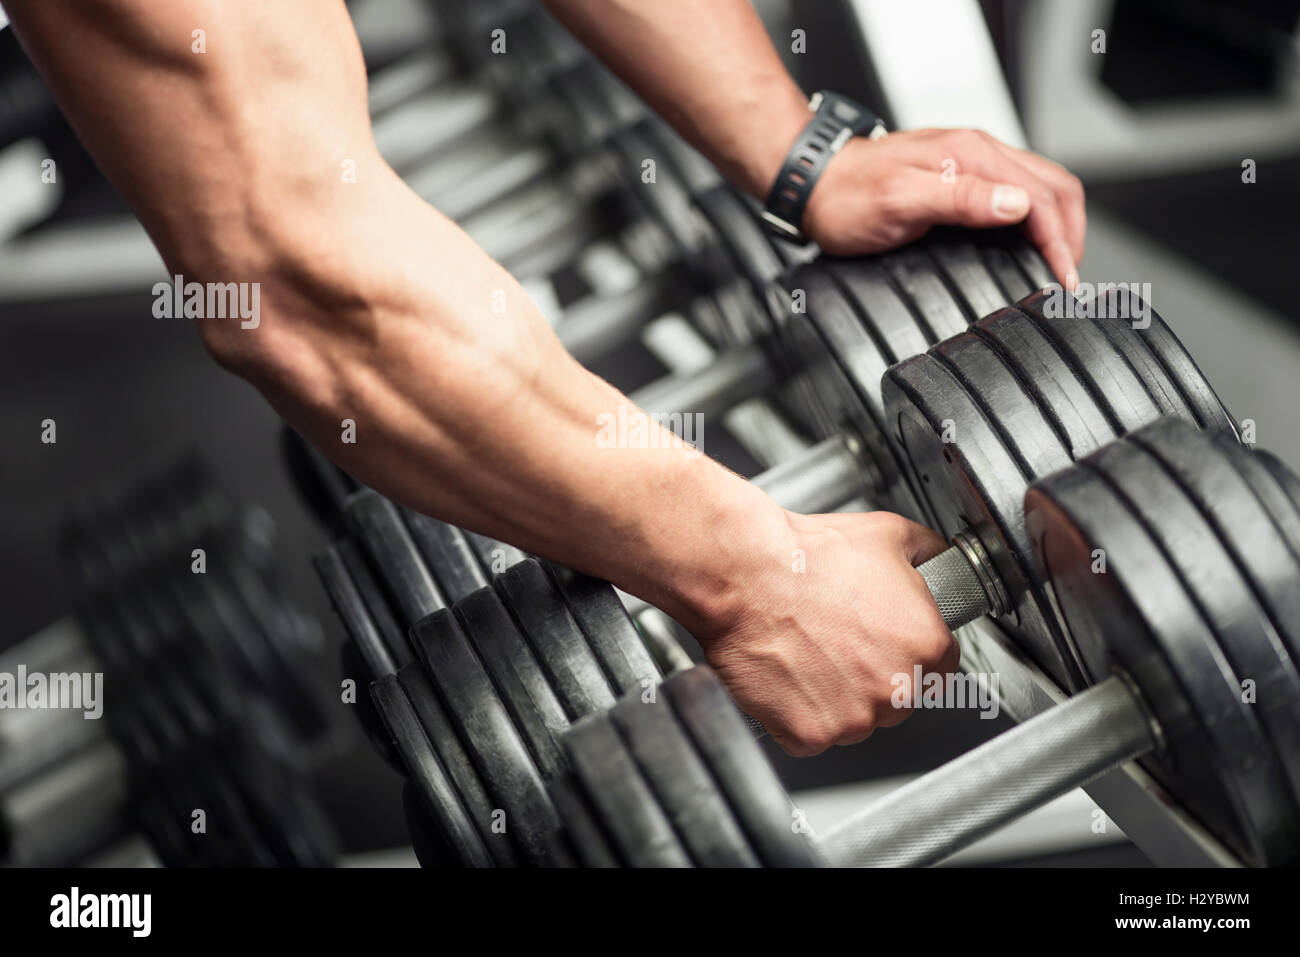 Strong well built bodybuilder lifting a dumbbell - Stock Image